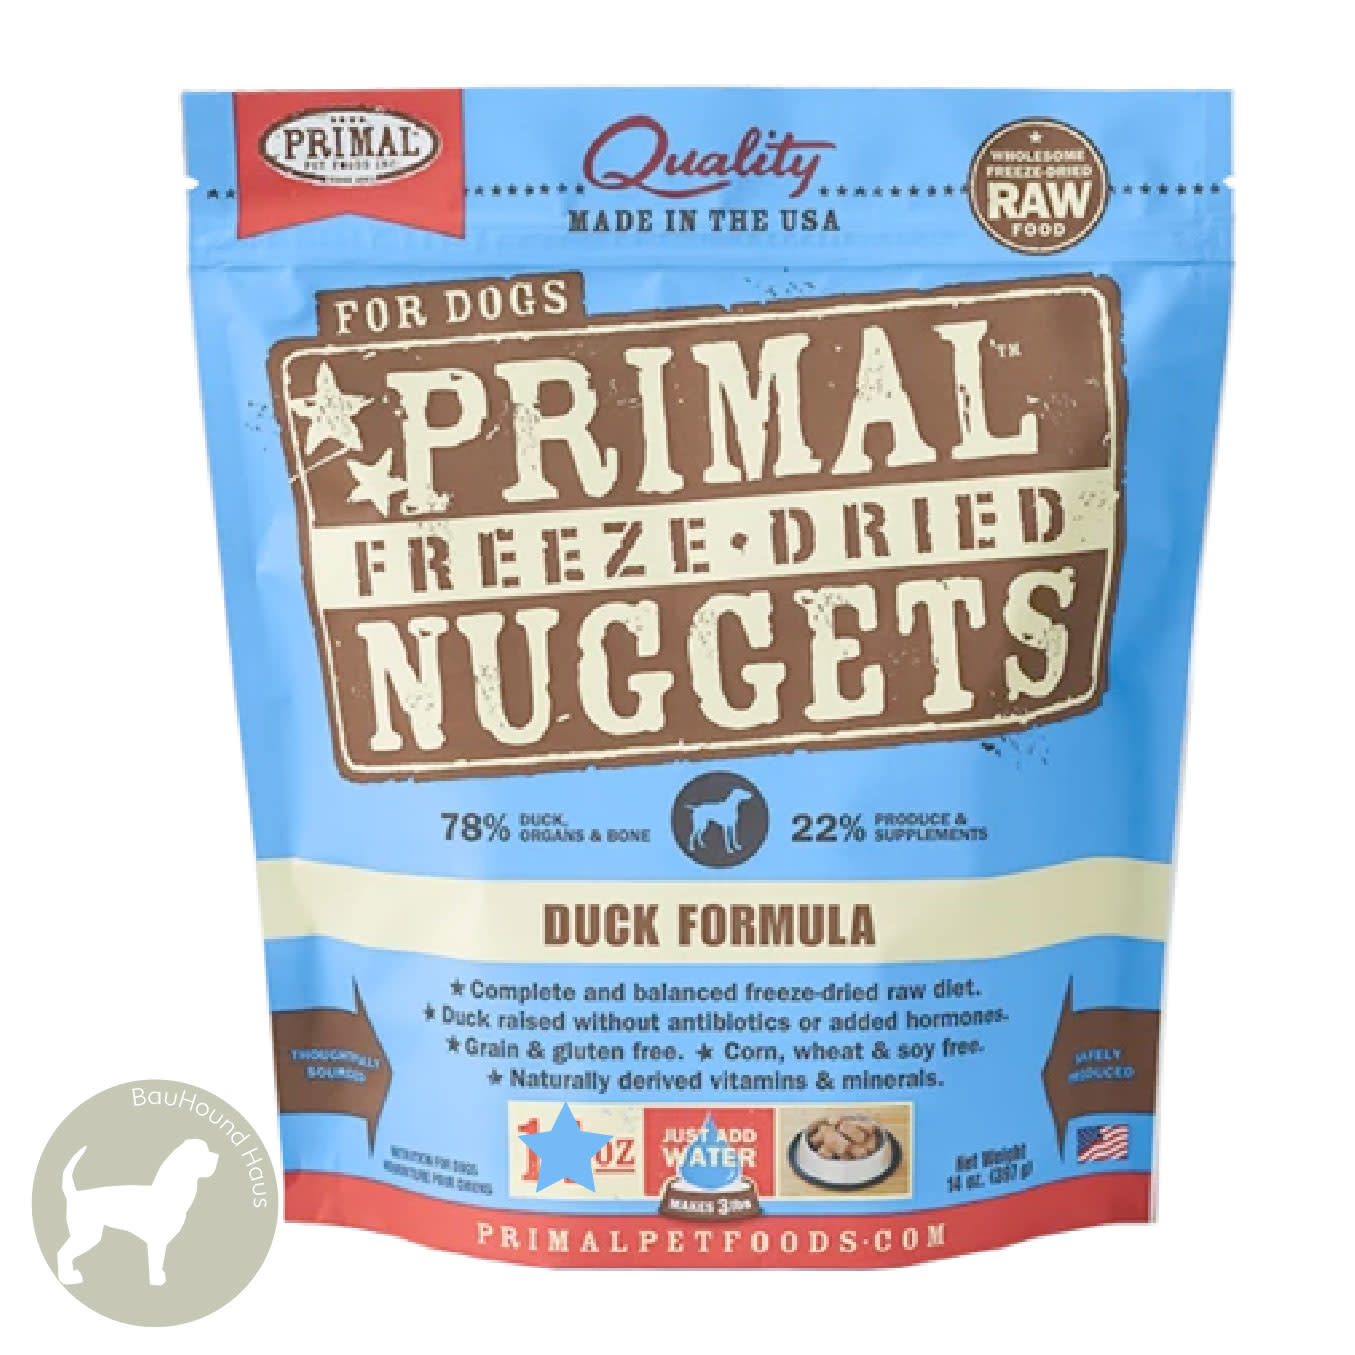 Primal Pet Foods Primal Pet Foods Freeze Dried Formula Duck, 14oz